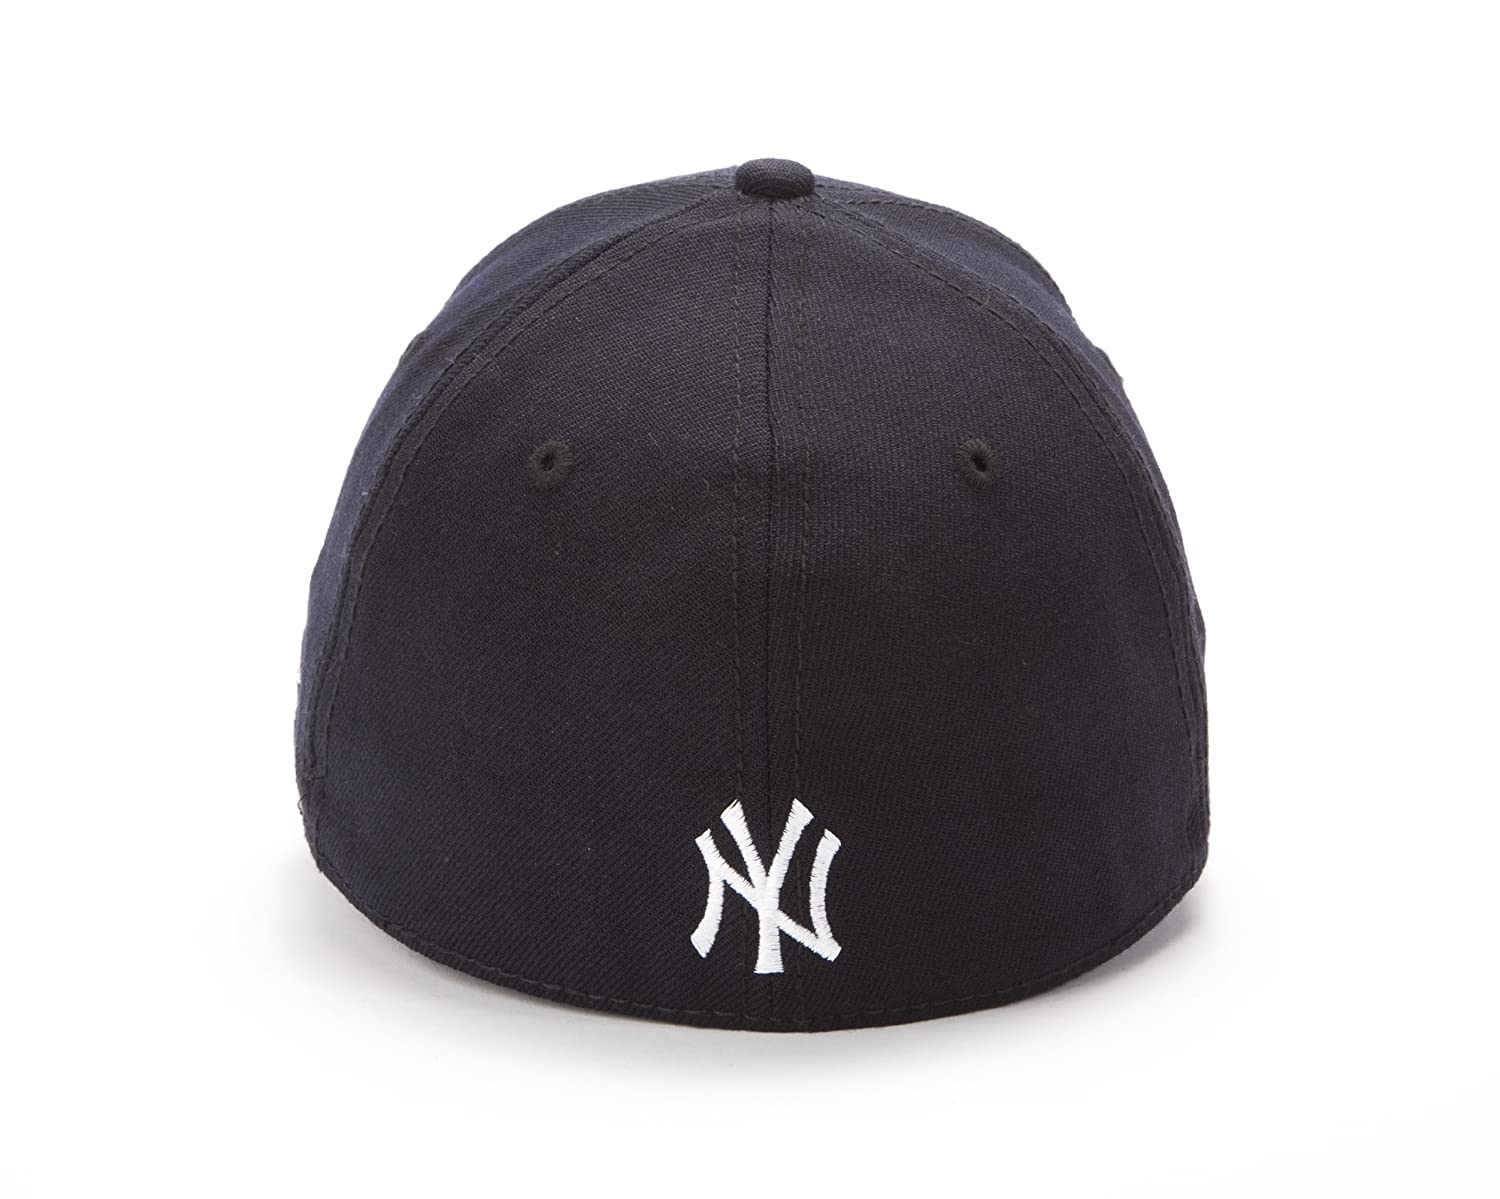 Amazon.com : MLB New York Yankees Derek Jeter 3, 000 Hits 39Thirty Cap, Navy, Small/Medium : Sports Fan Baseball Caps : Sports & Outdoors